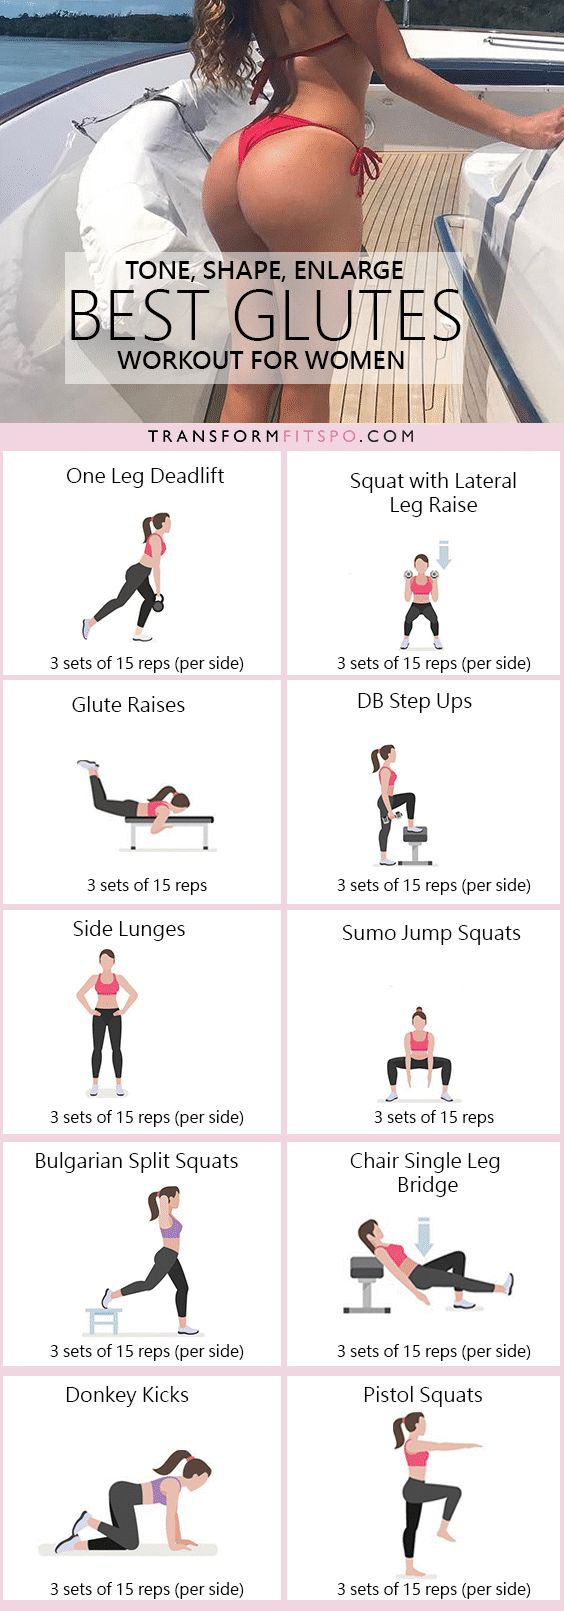 http://holdfit.xyz/how-to-get-a-bigger-bum-tone-round-and-enlarge-your-glutes/